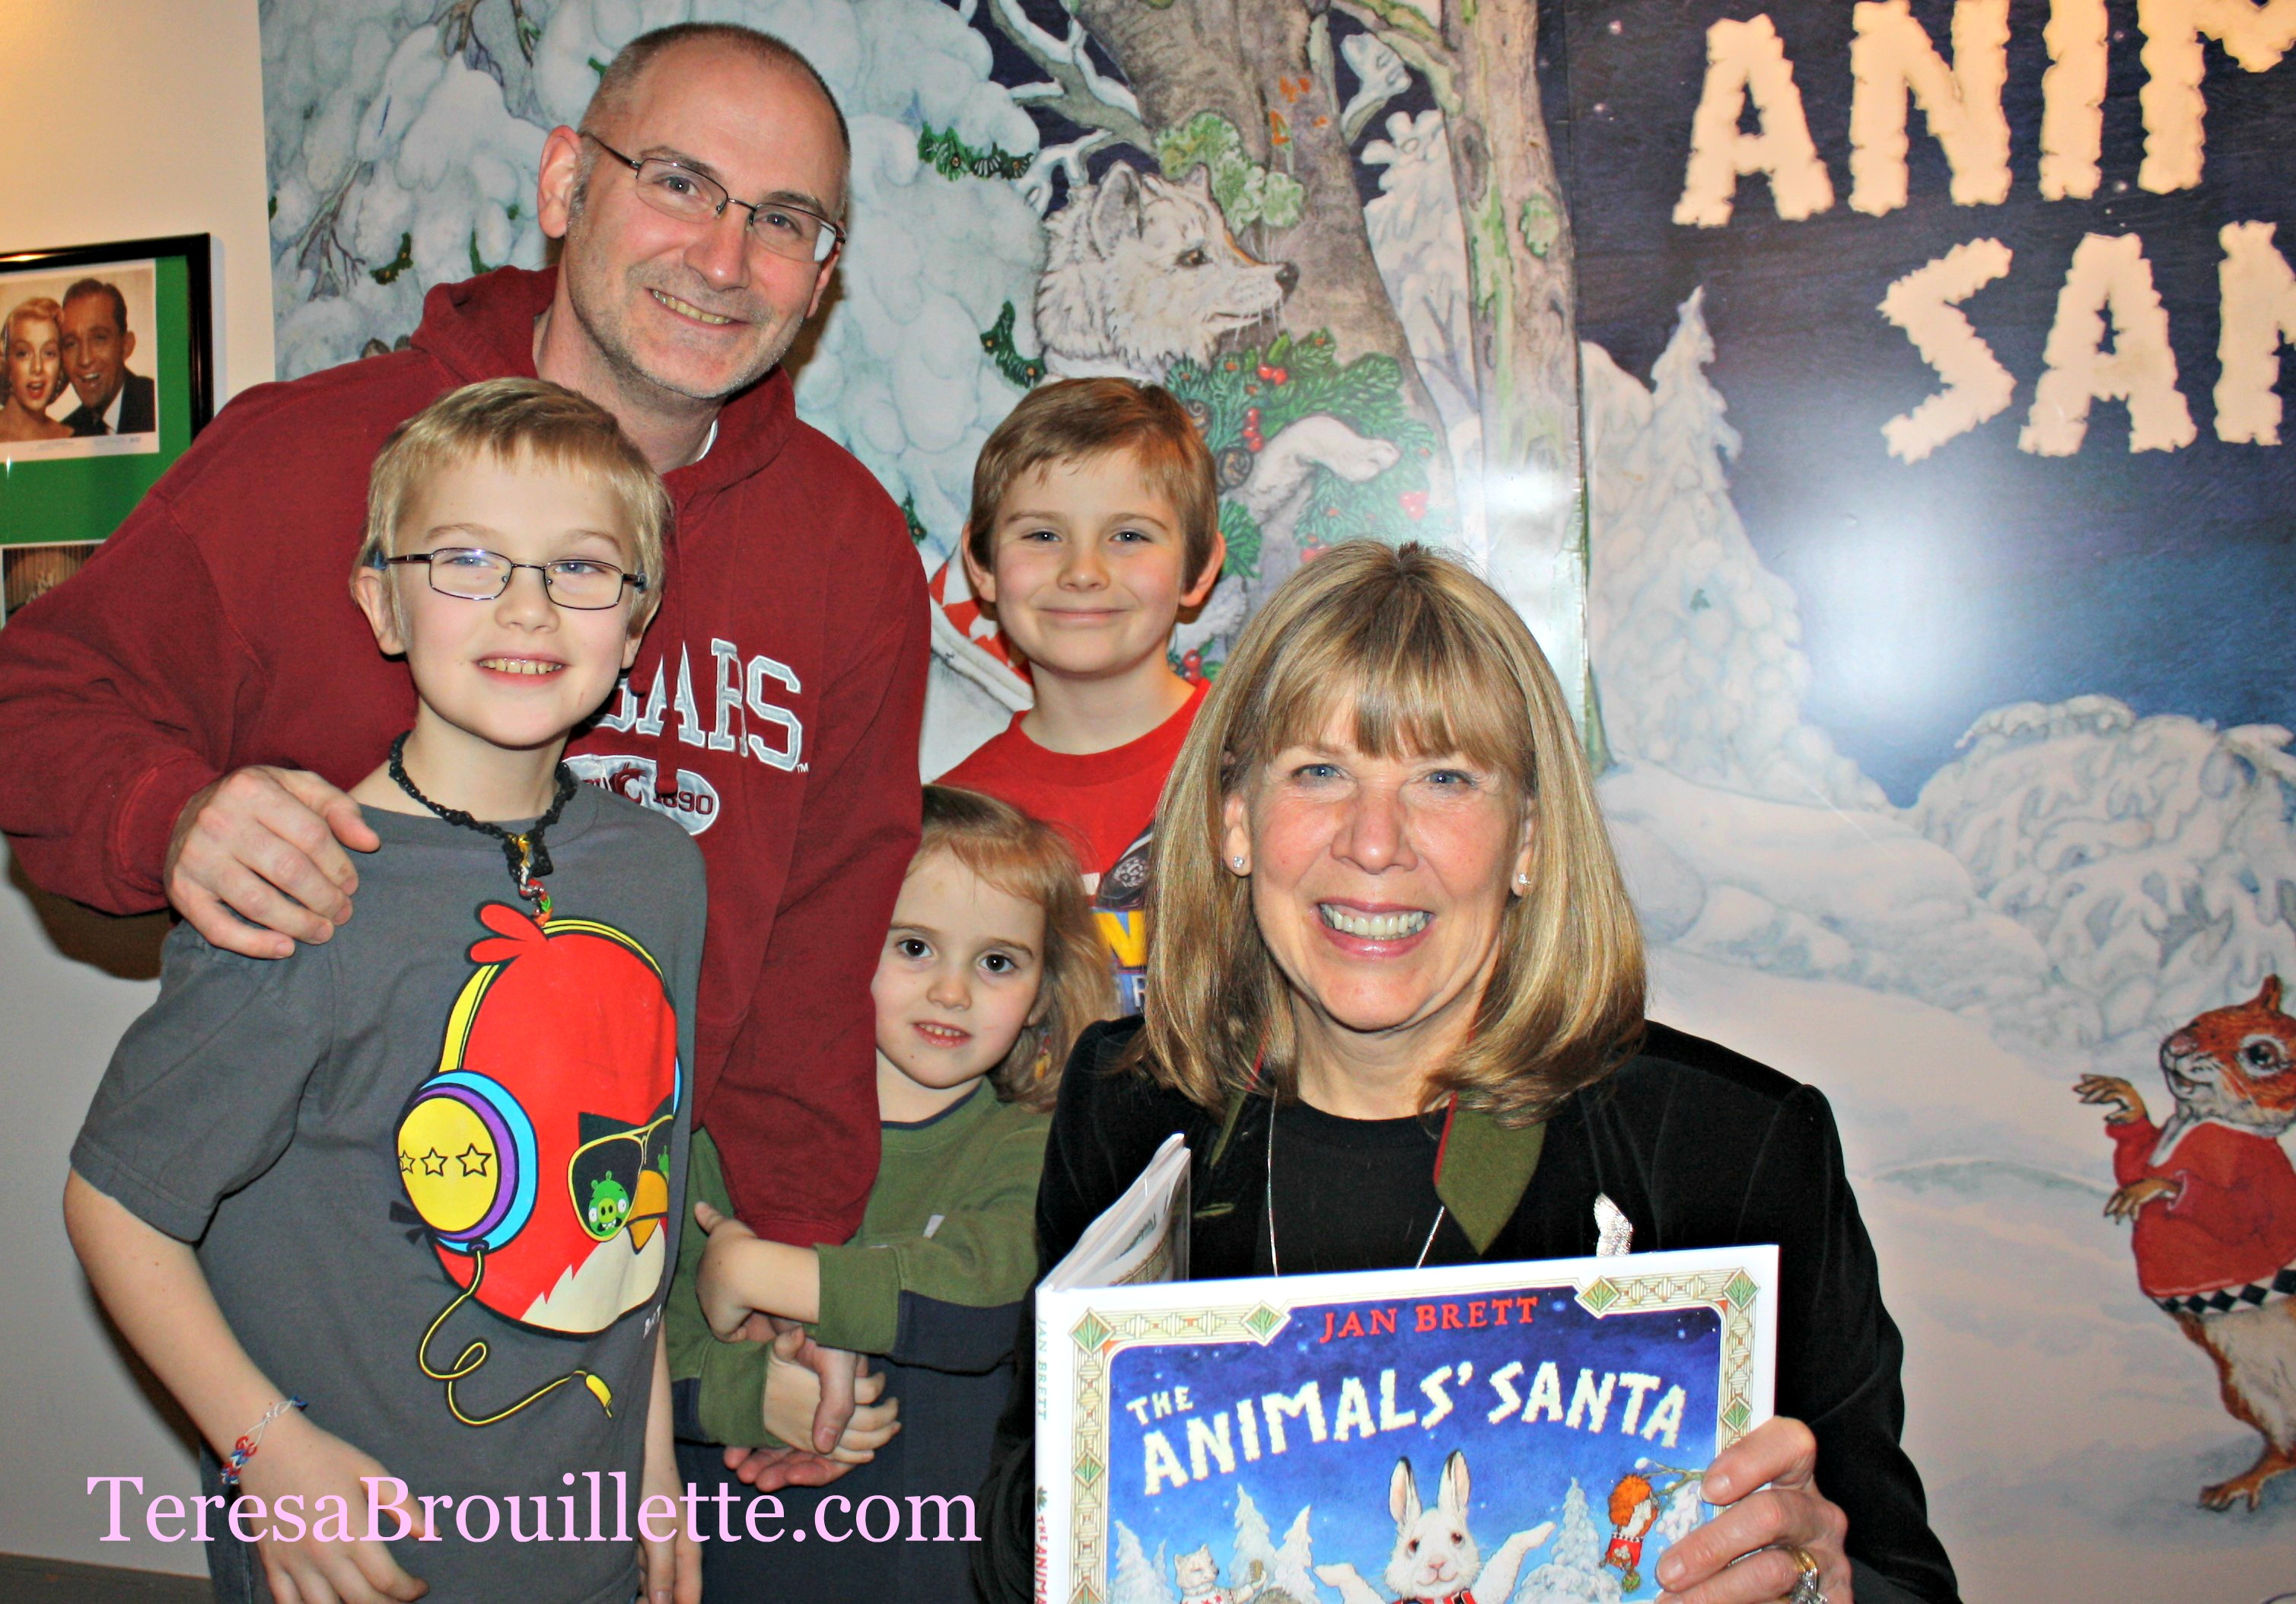 An Evening With Jan Brett and The Animals' Santa